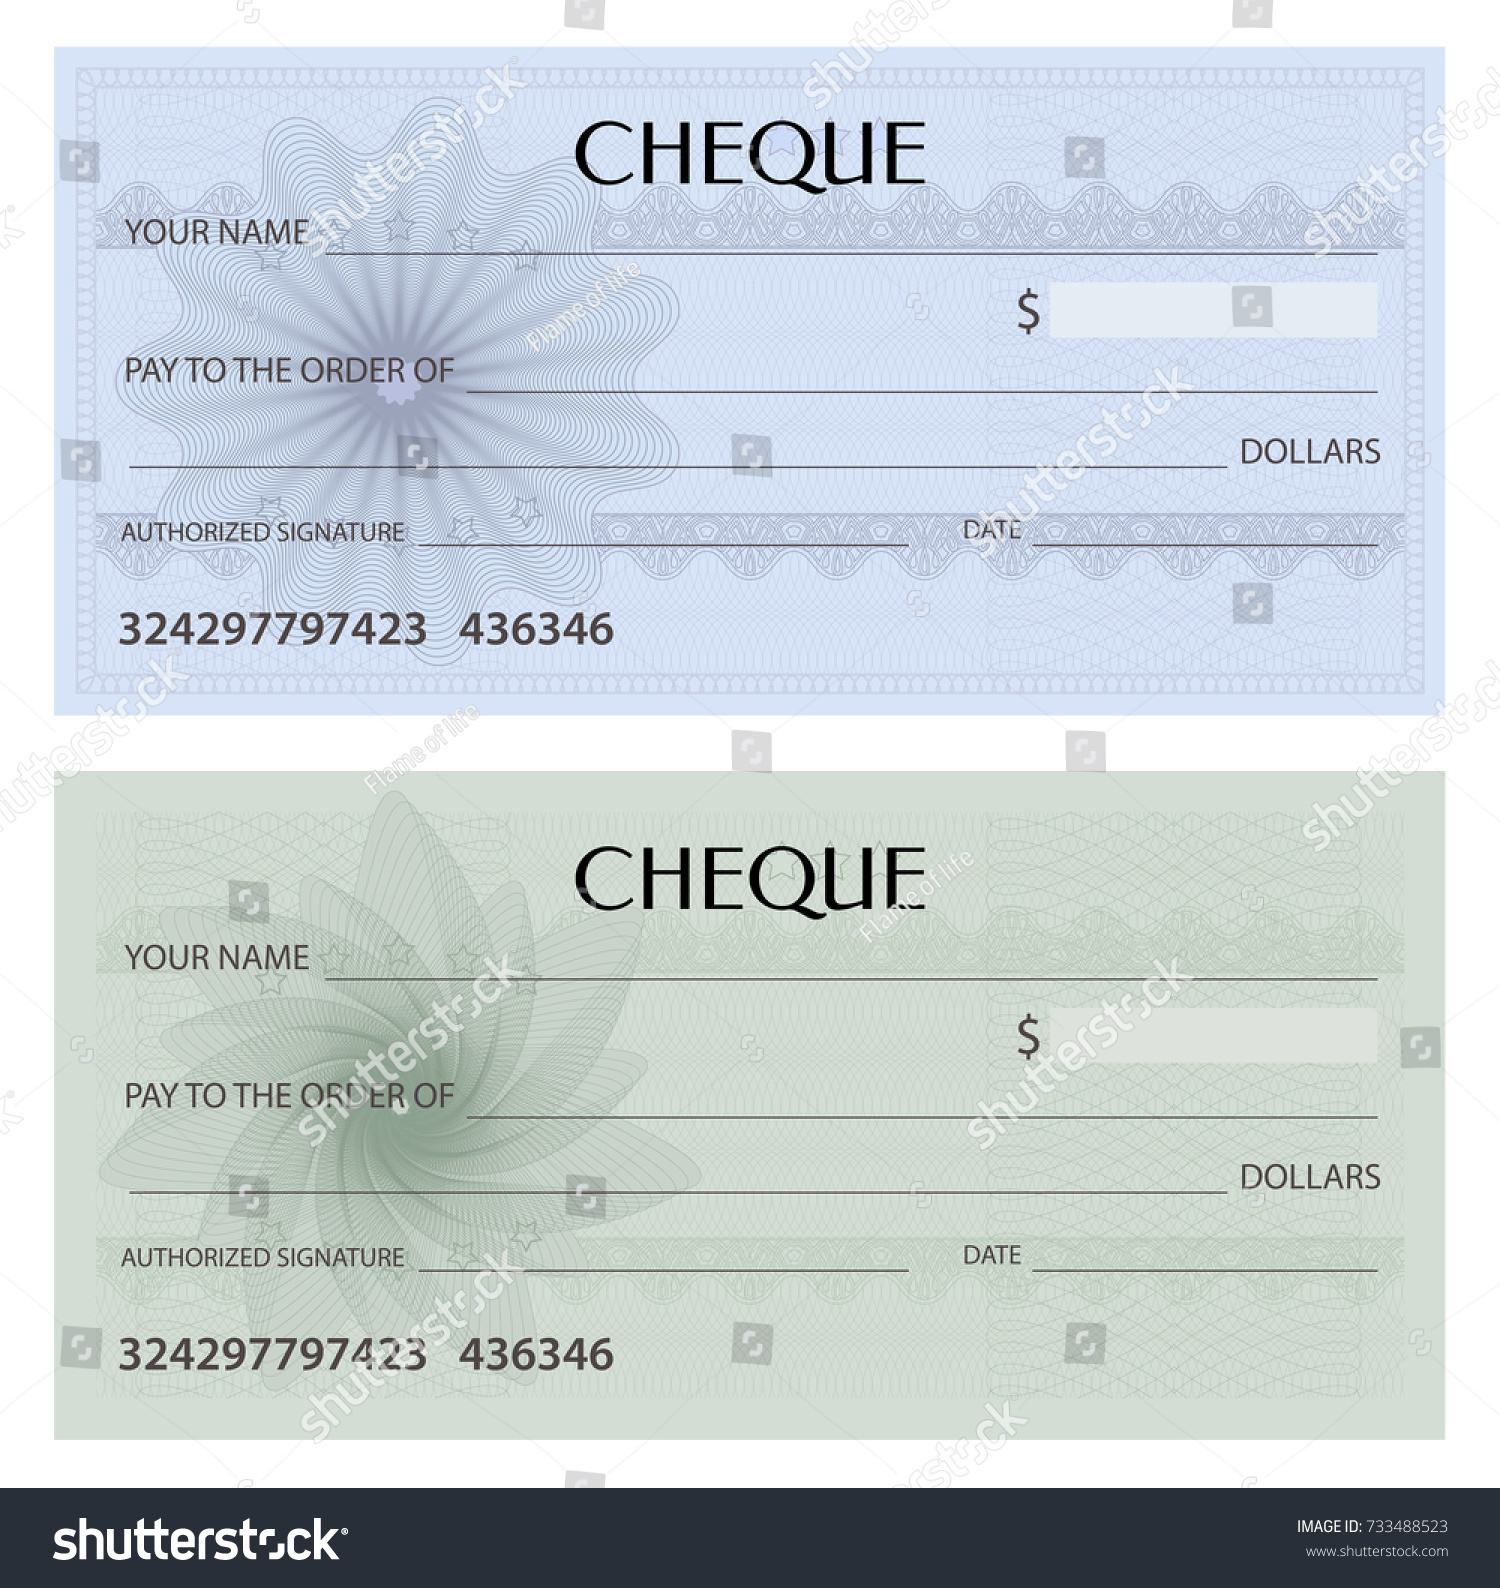 Check cheque chequebook template guilloche pattern stock vector check cheque chequebook template guilloche pattern with watermark spirograph background pronofoot35fo Gallery